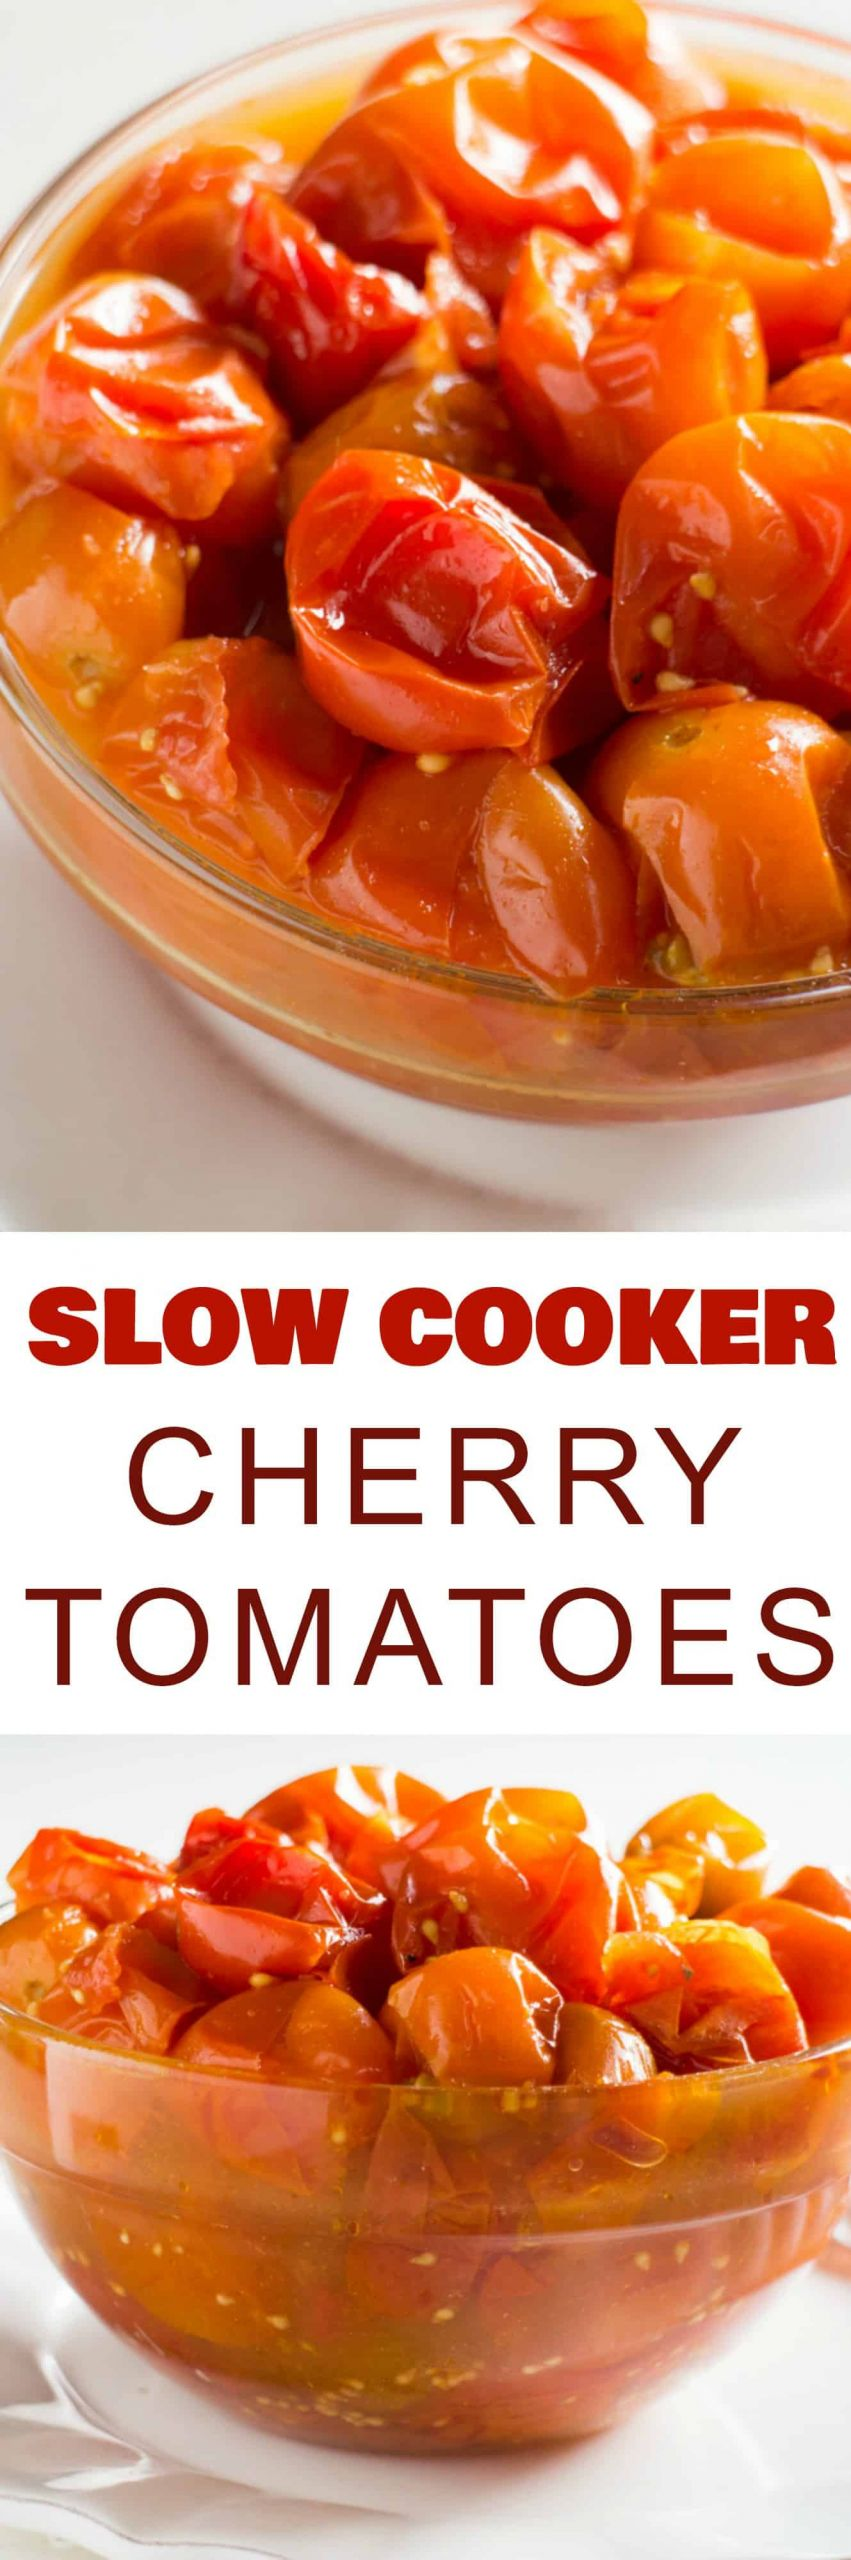 Canning Cherry Tomatoes Recipes  Slow Cooker Cherry Tomatoes Recipe Make them in the